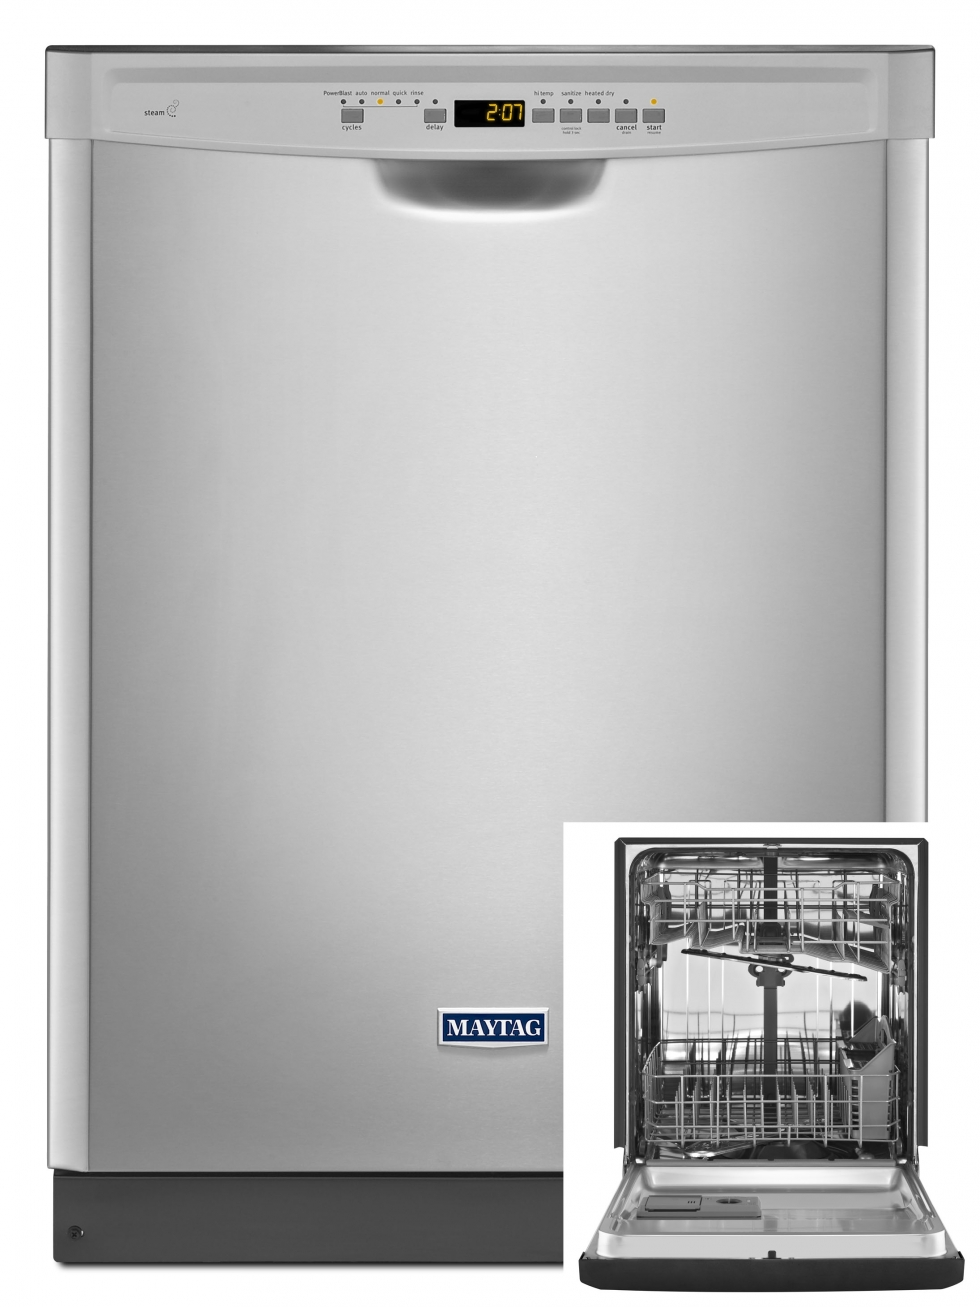 Maytag Stainless Steel Tub Dishwasher